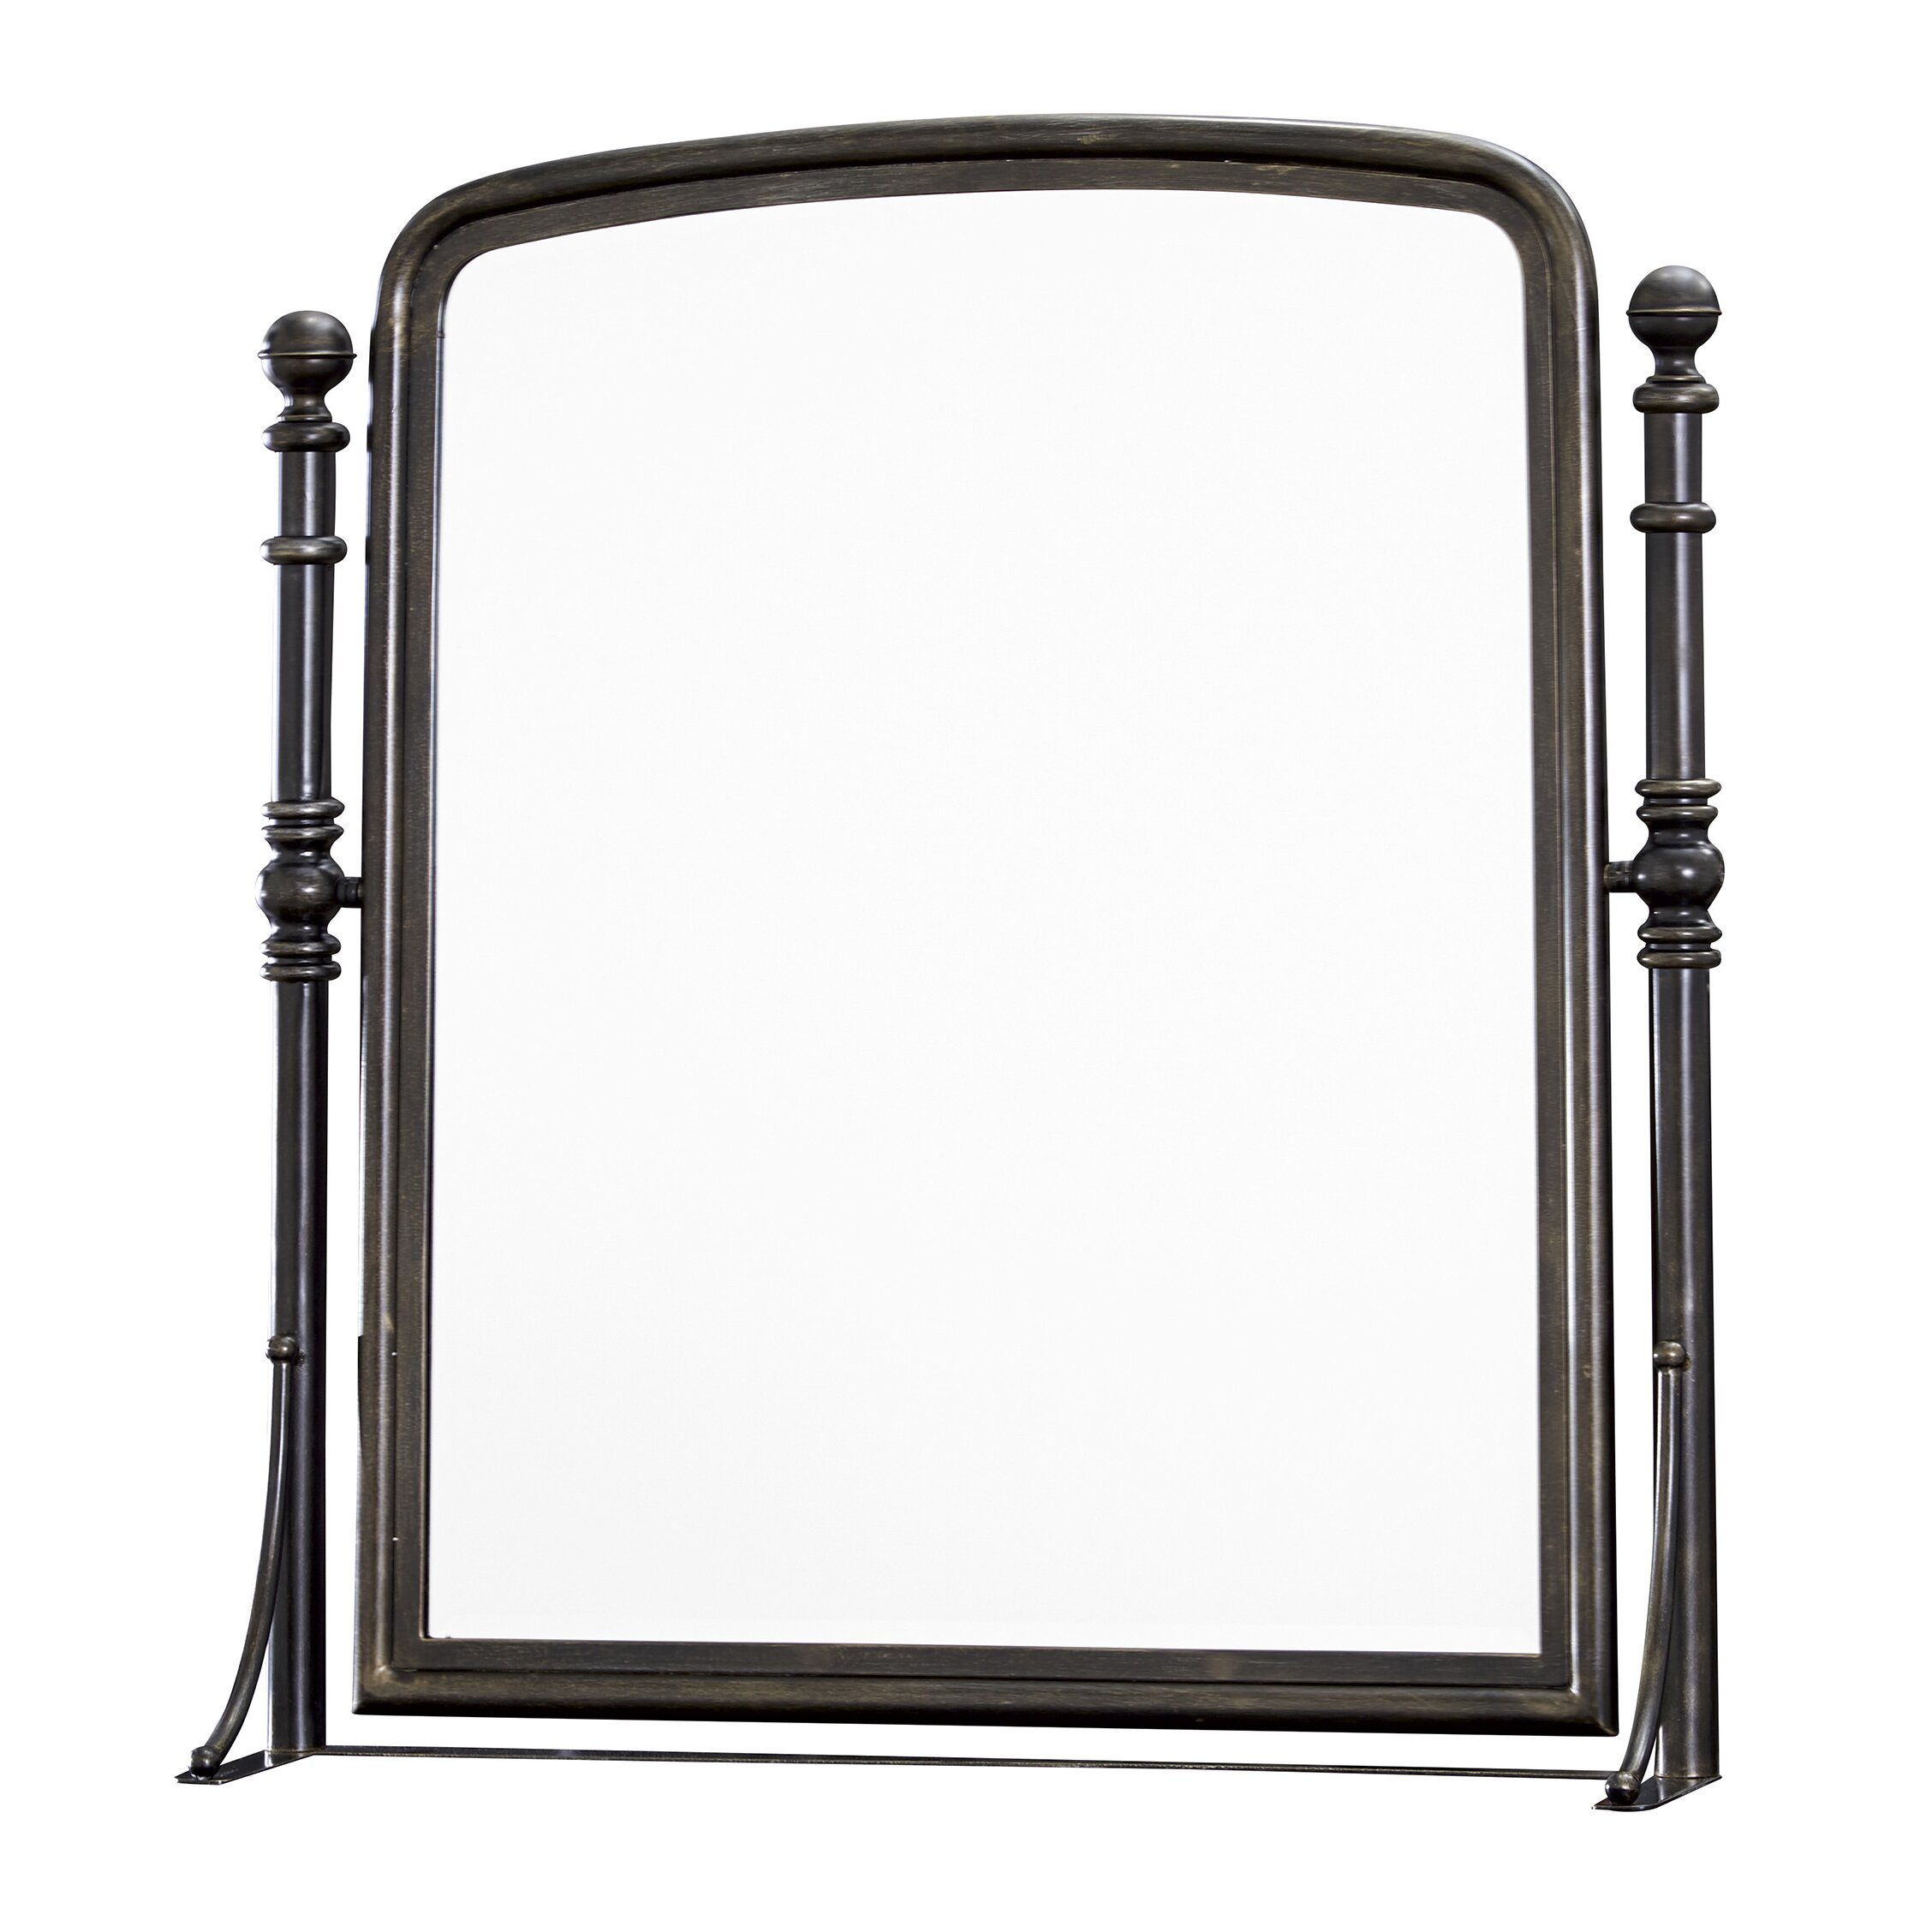 Smartstuff furniture penrose tilt square dresser mirror for Square mirror